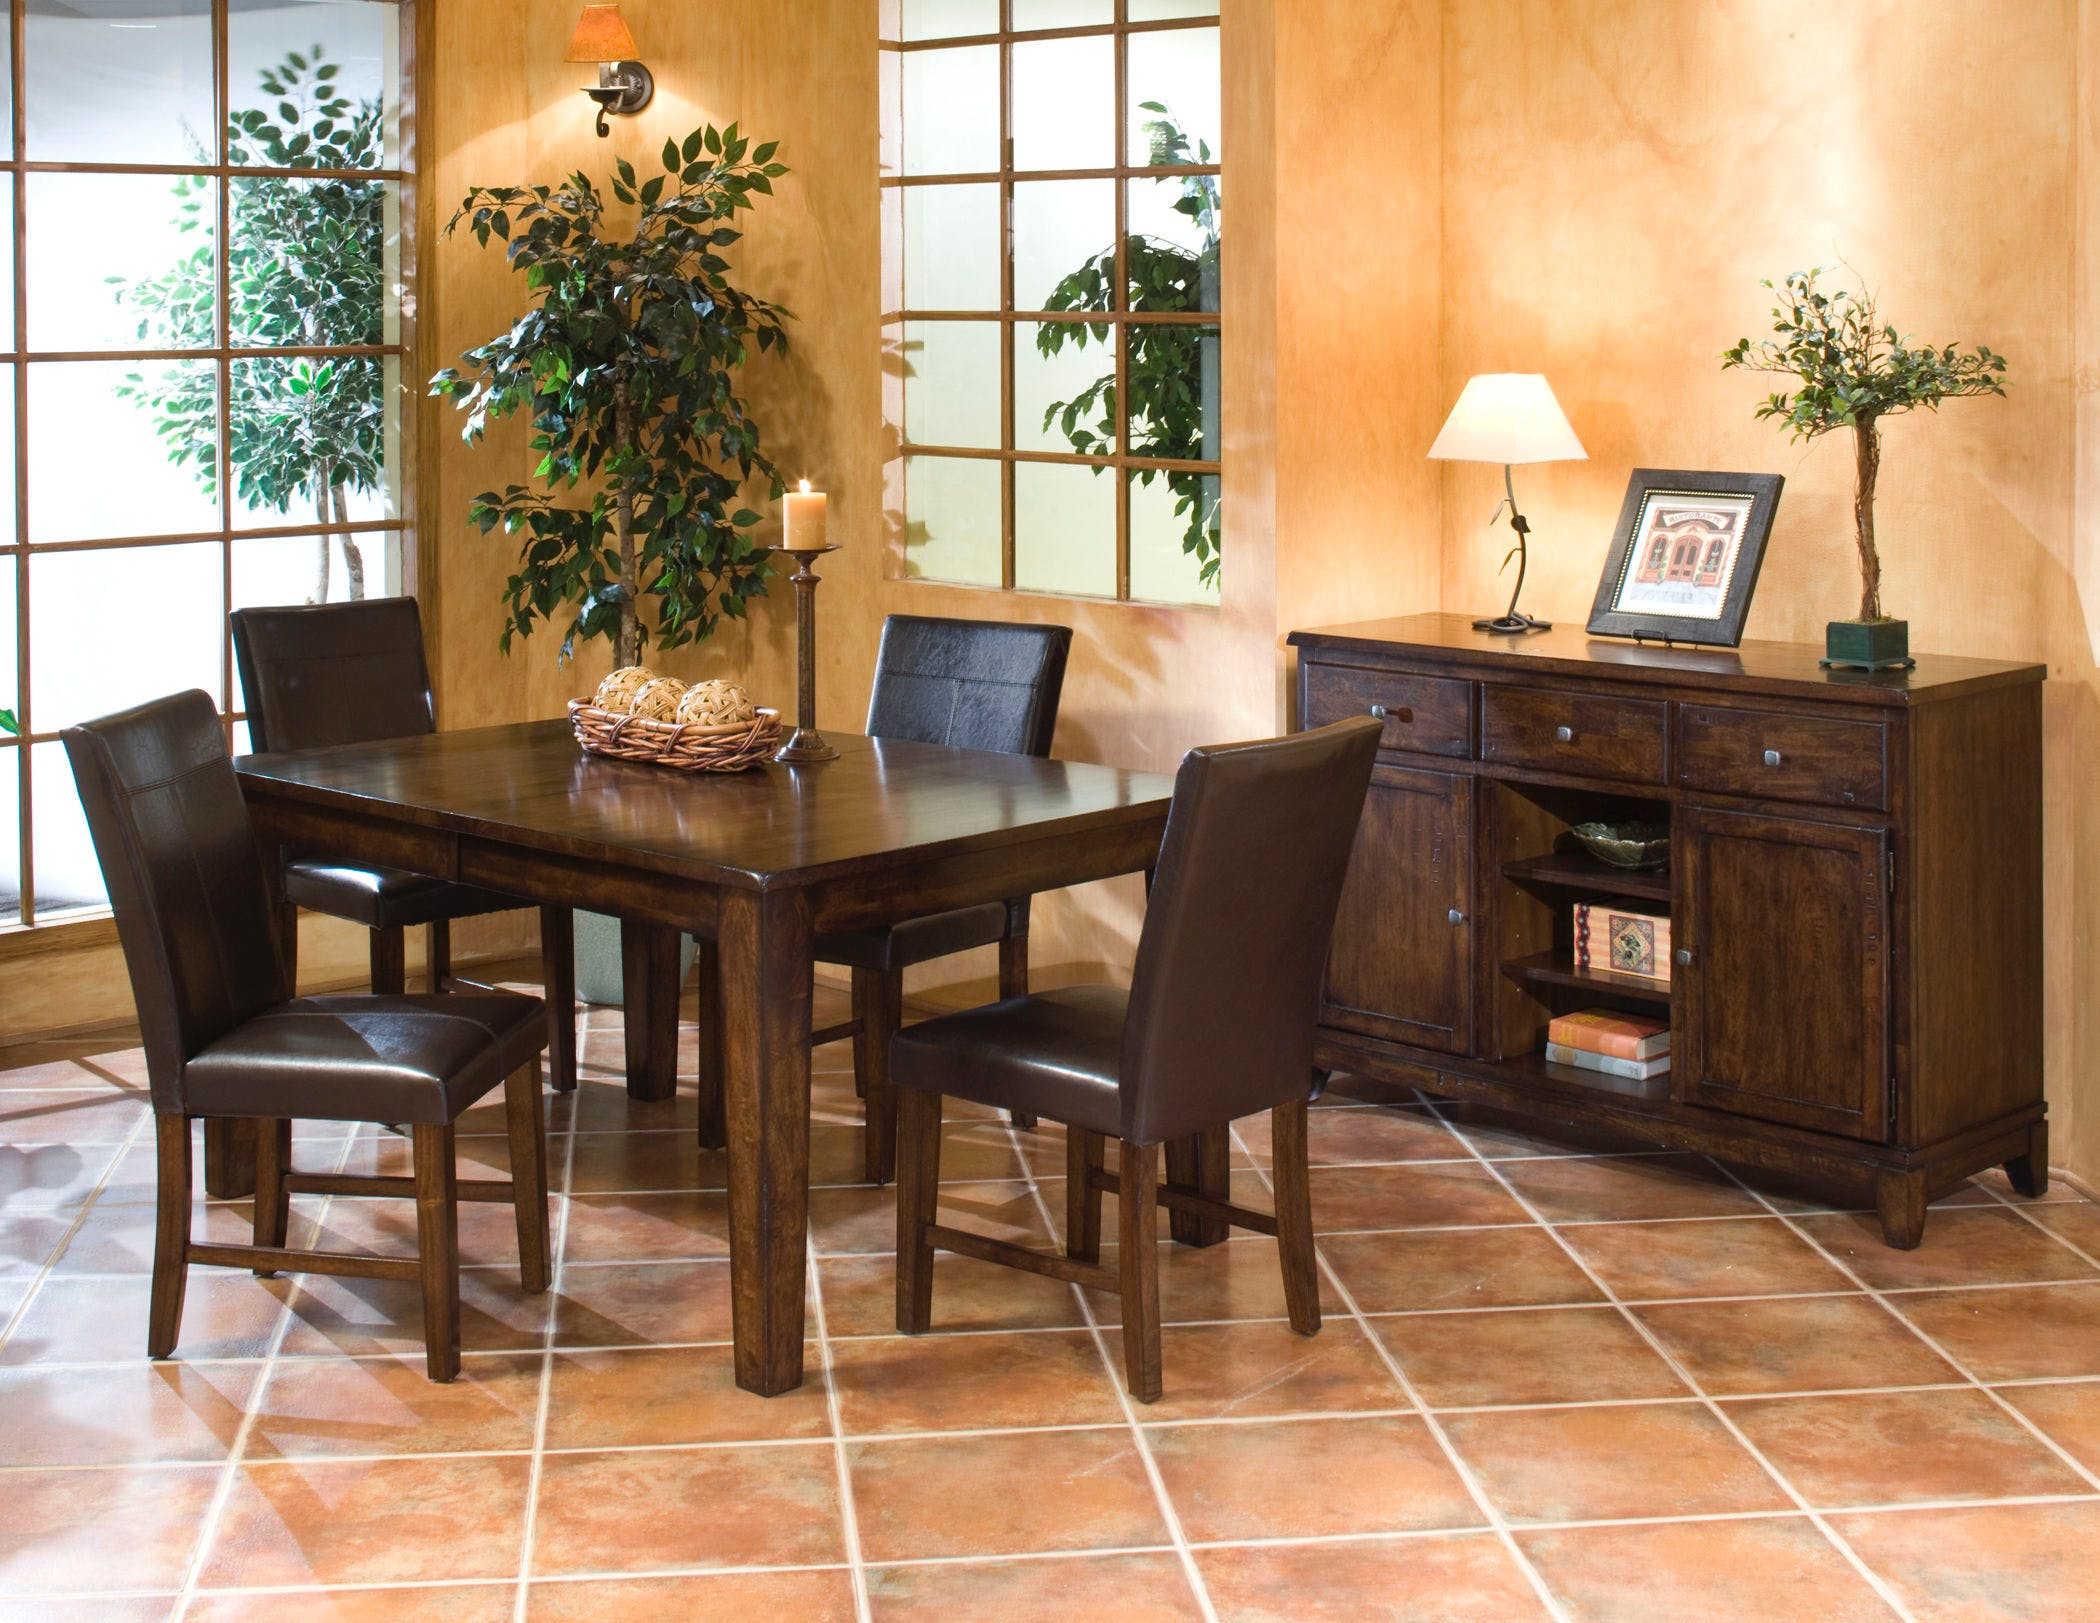 Groovy Kona Dining Table Raisin Intercon Furniture Gmtry Best Dining Table And Chair Ideas Images Gmtryco